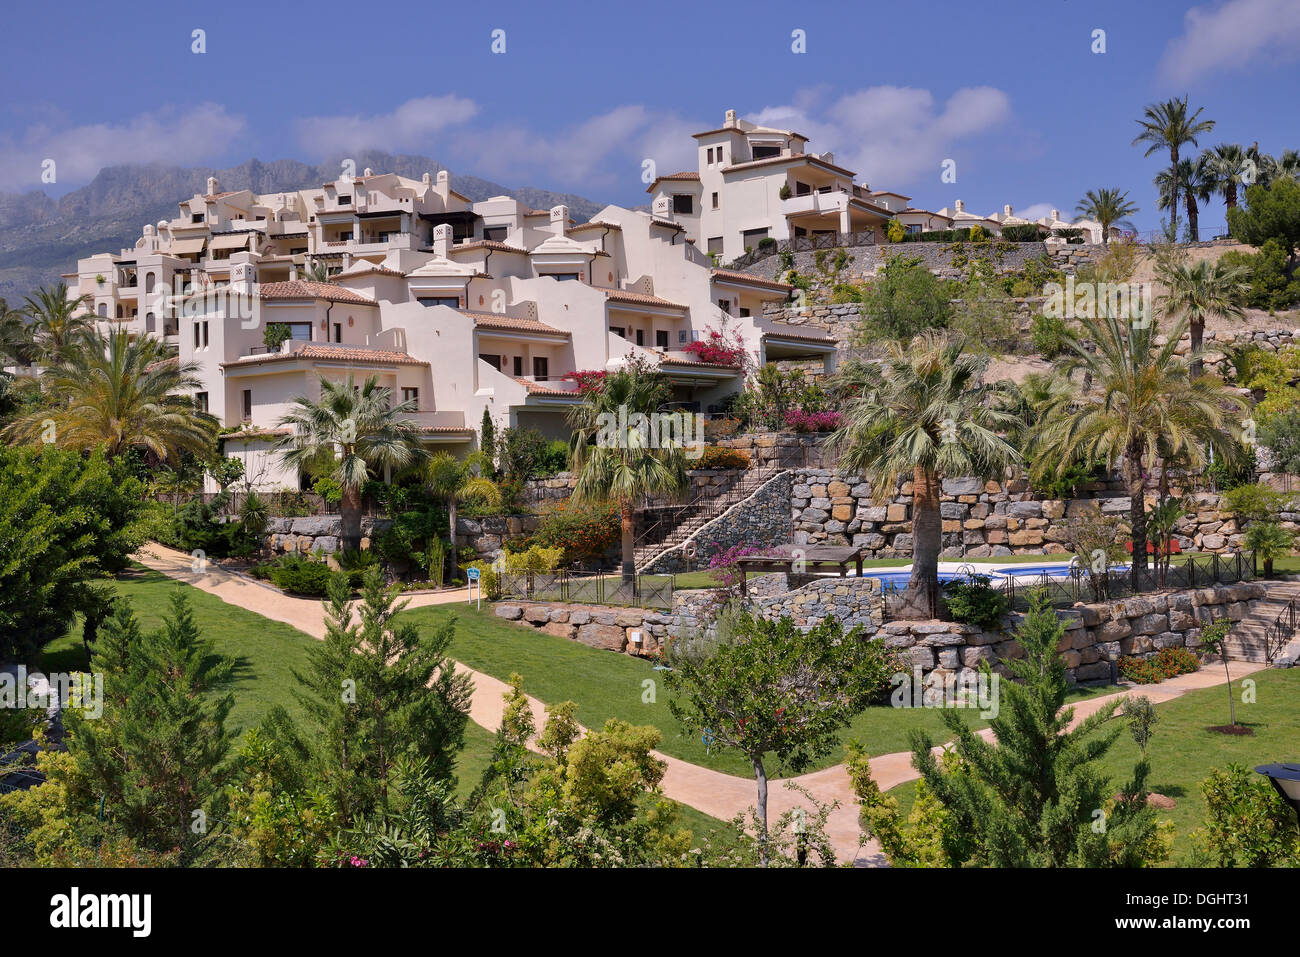 Urbanisation or a holiday home complex in Altea la Olla, La Olla, Altea, Costa Blanca, Alicante province, Spain - Stock Image